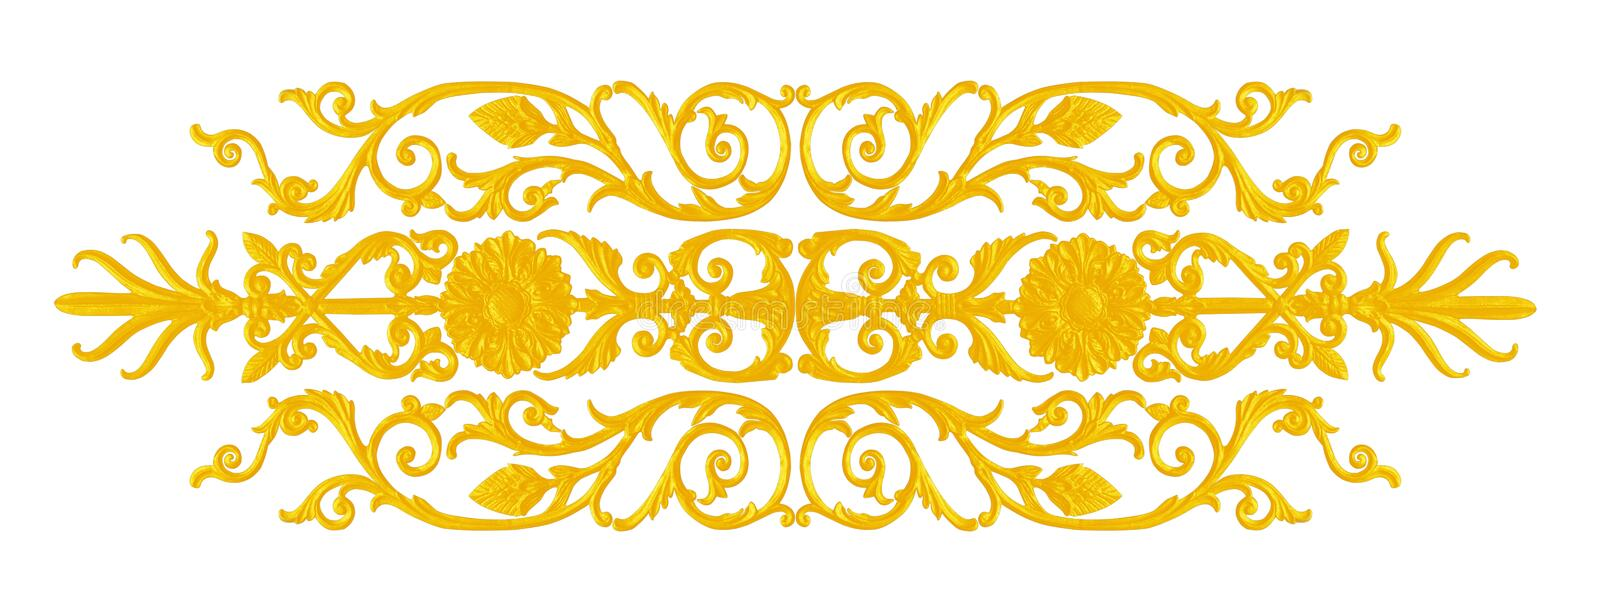 Ornament elements, vintage gold floral designs. The Ornament elements, vintage gold floral designs isolated on white background stock photography